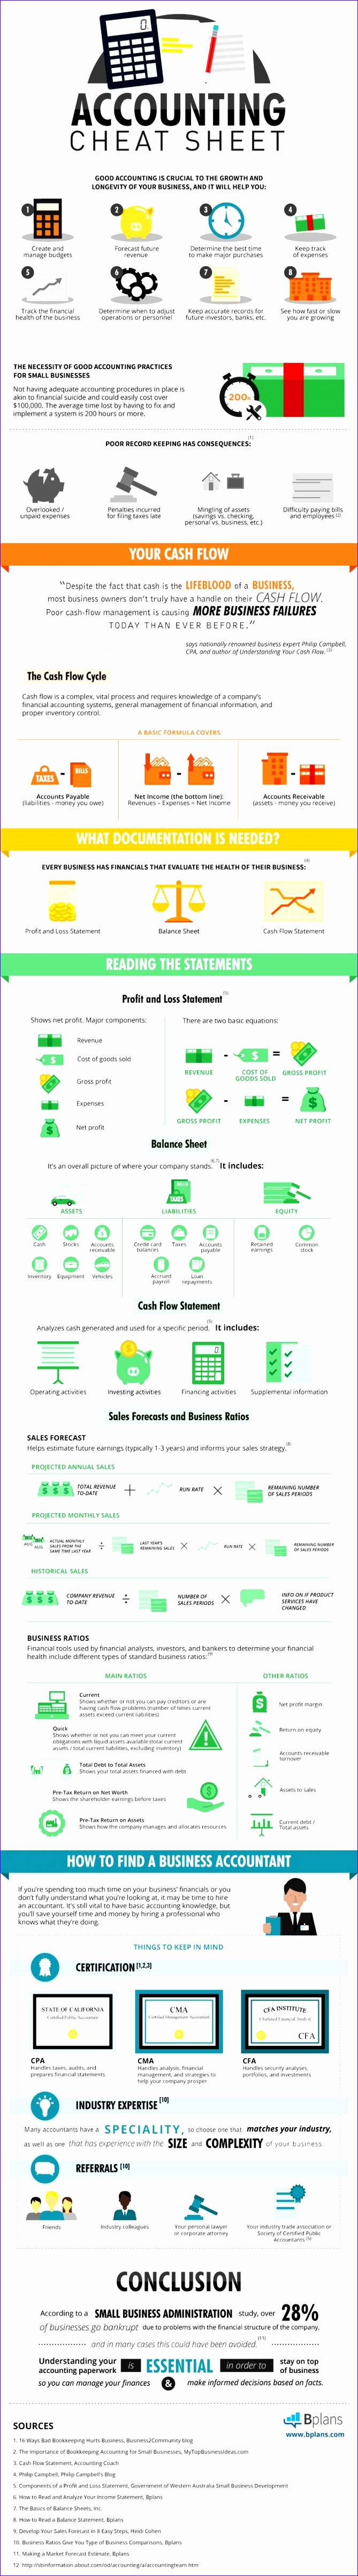 Small Business Balance Sheet Template Excel Iasga Inspirational the 25 Best Accounting Ideas On Pinterest